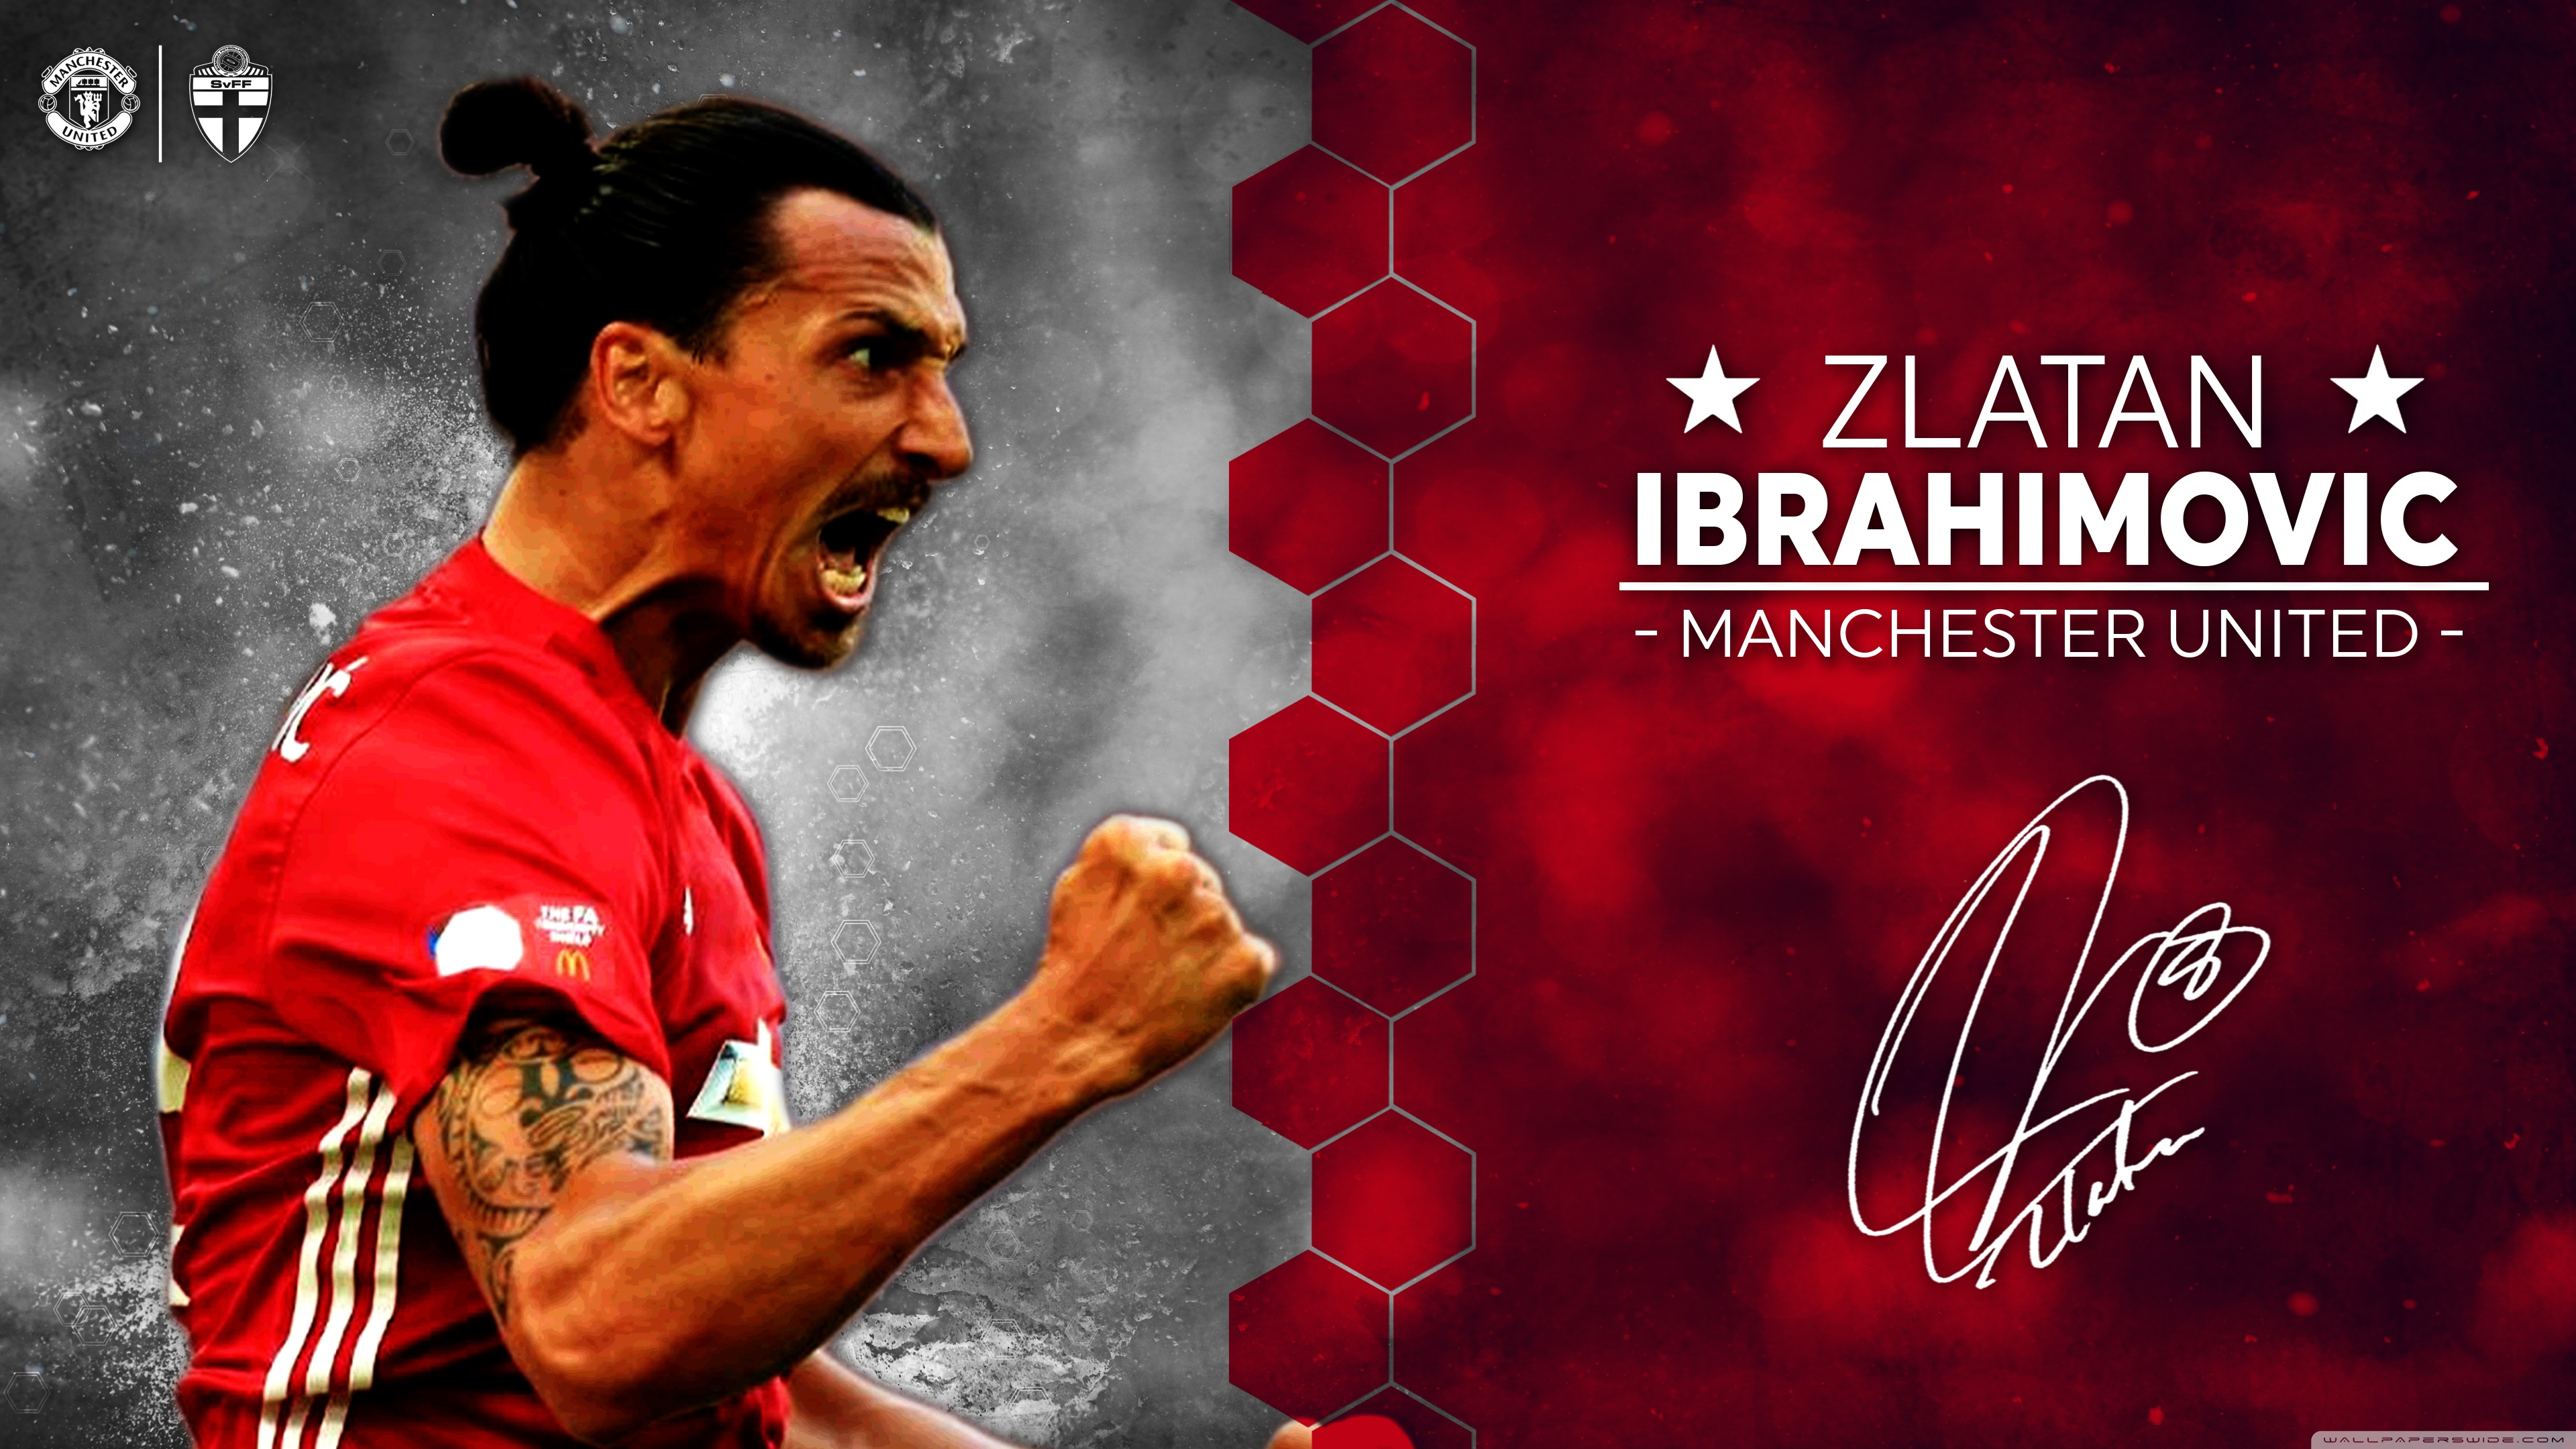 zlatan ibrahimovic manchester united 2016 17 4k hd zlatan ibrahimovic wallpaper man utd 3554x1999 download hd wallpaper wallpapertip zlatan ibrahimovic wallpaper man utd